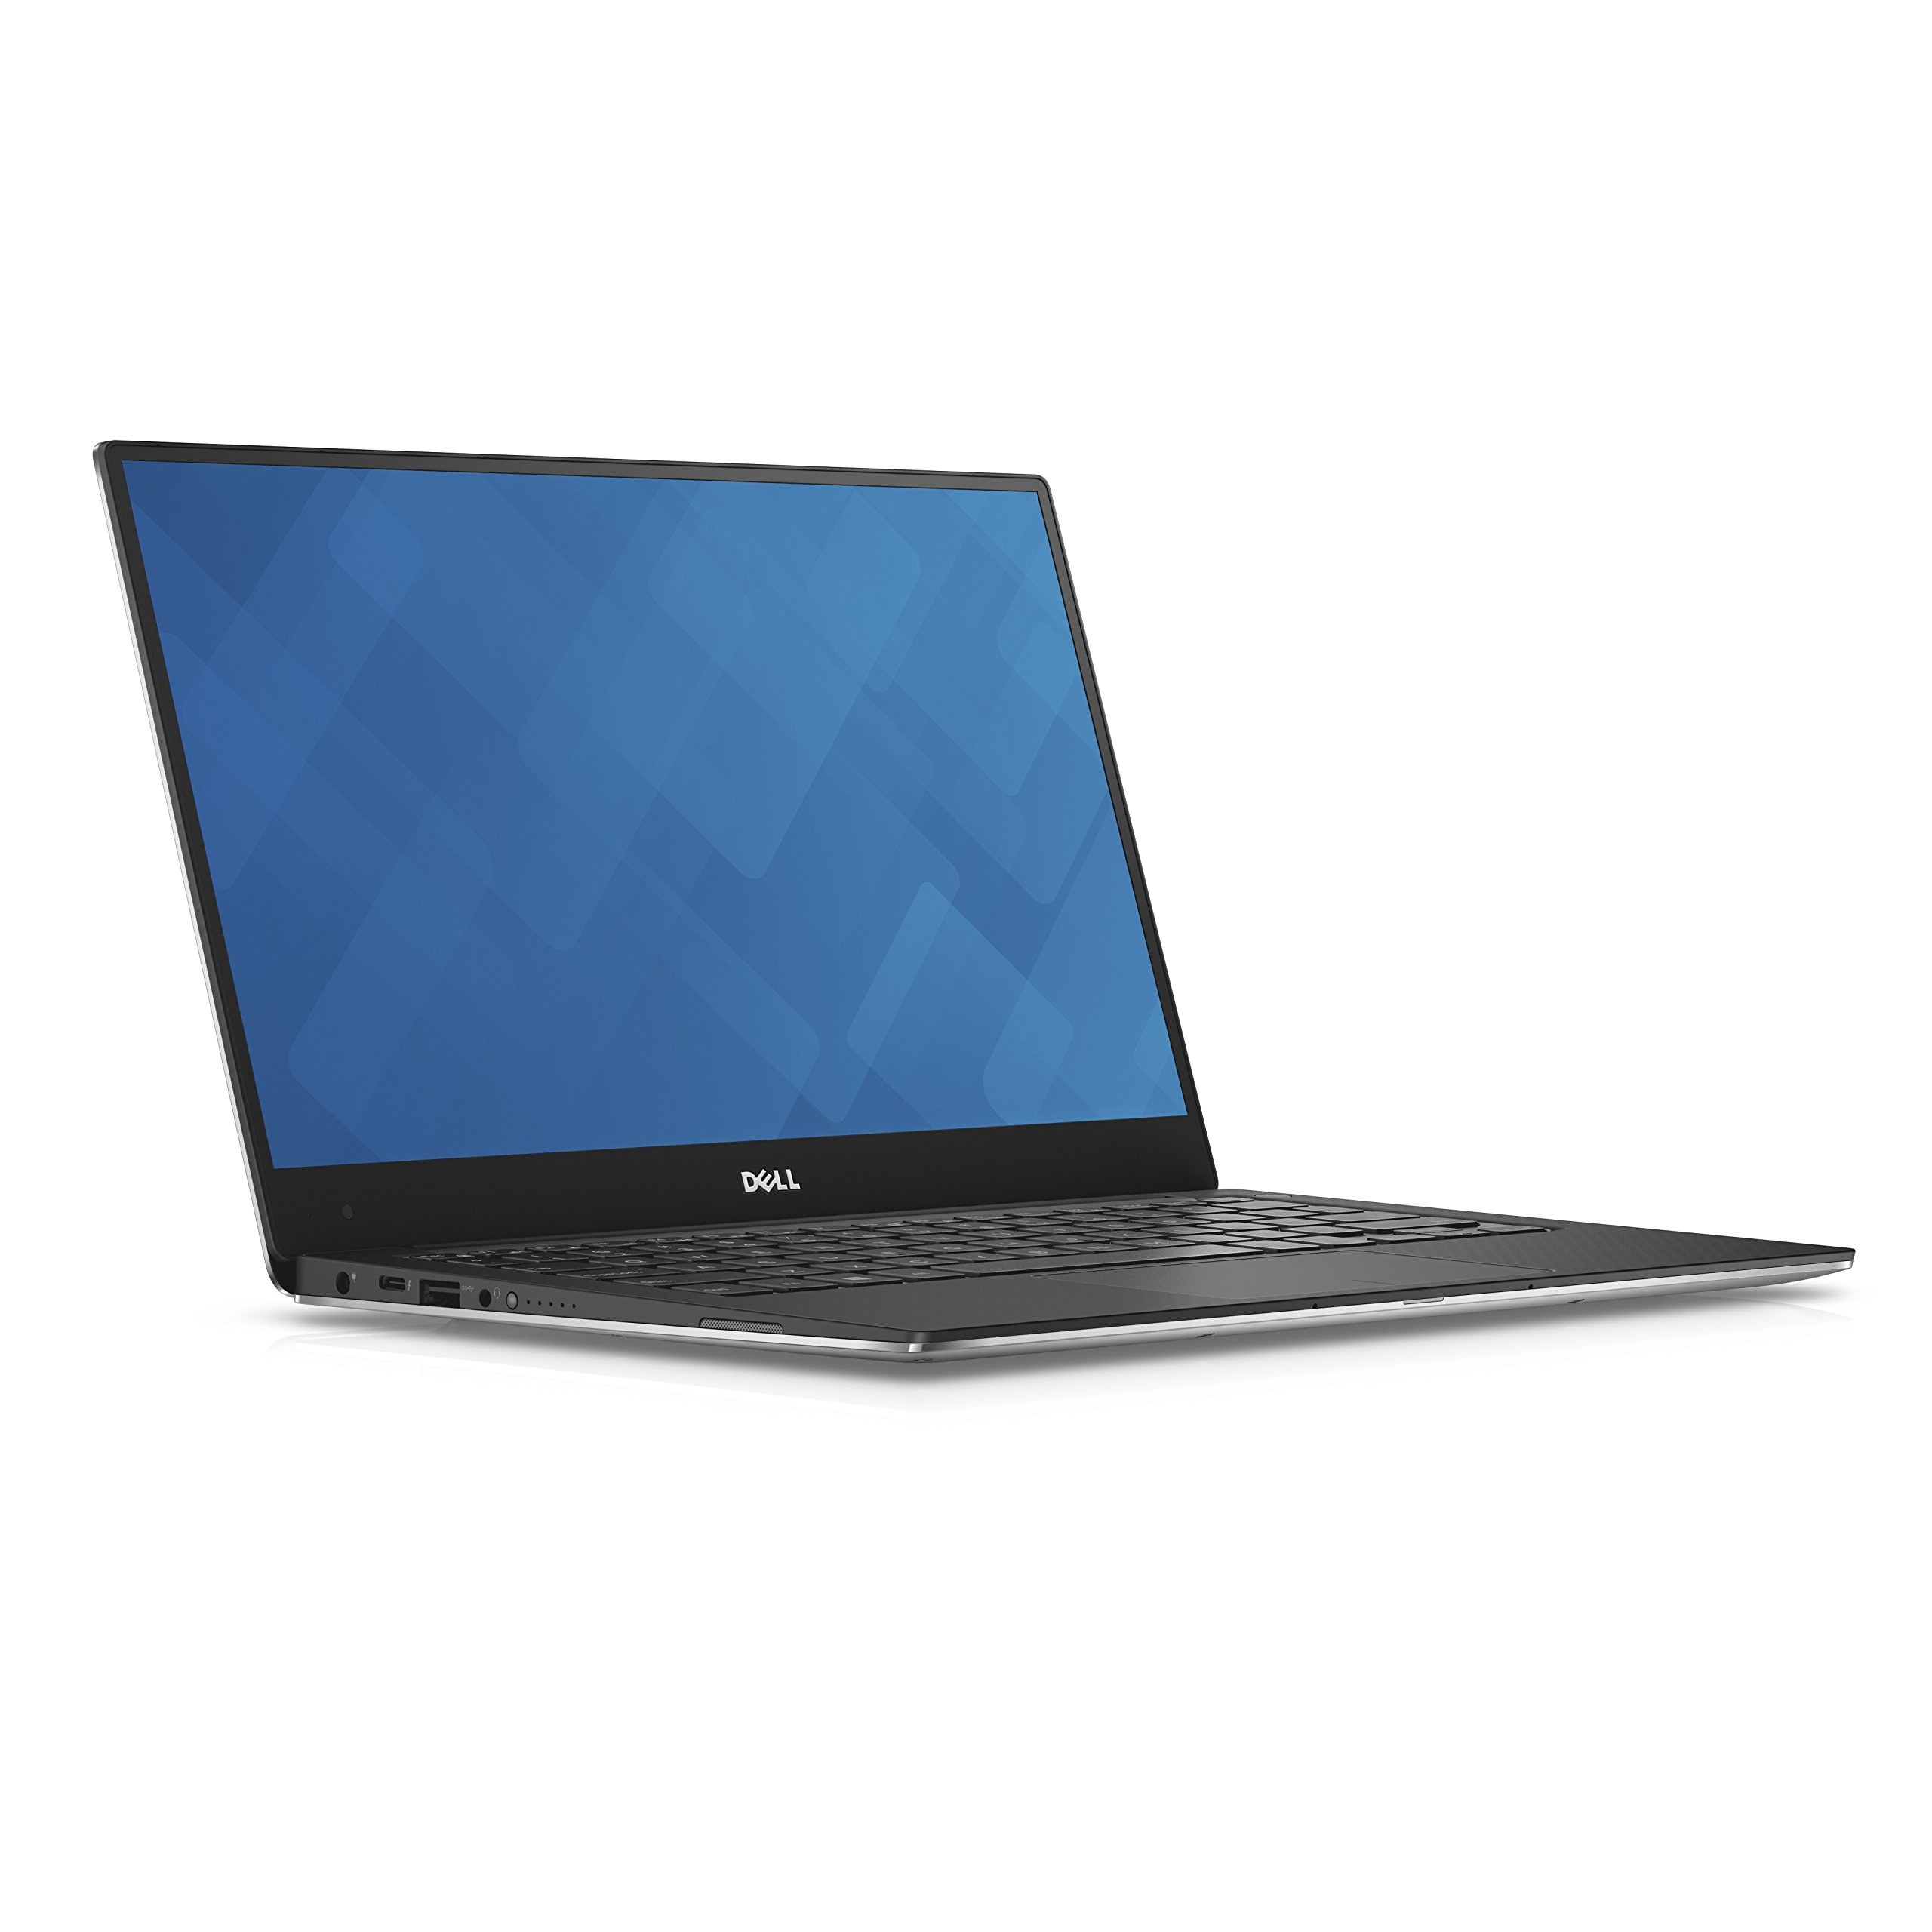 Dell 6W3DR XPS 13 Laptop, 13.3'' QHD, Intel Core i5-7200U, 8GB LPDDR3, 128GB Solid State Drive, Windows 10 Pro by Dell